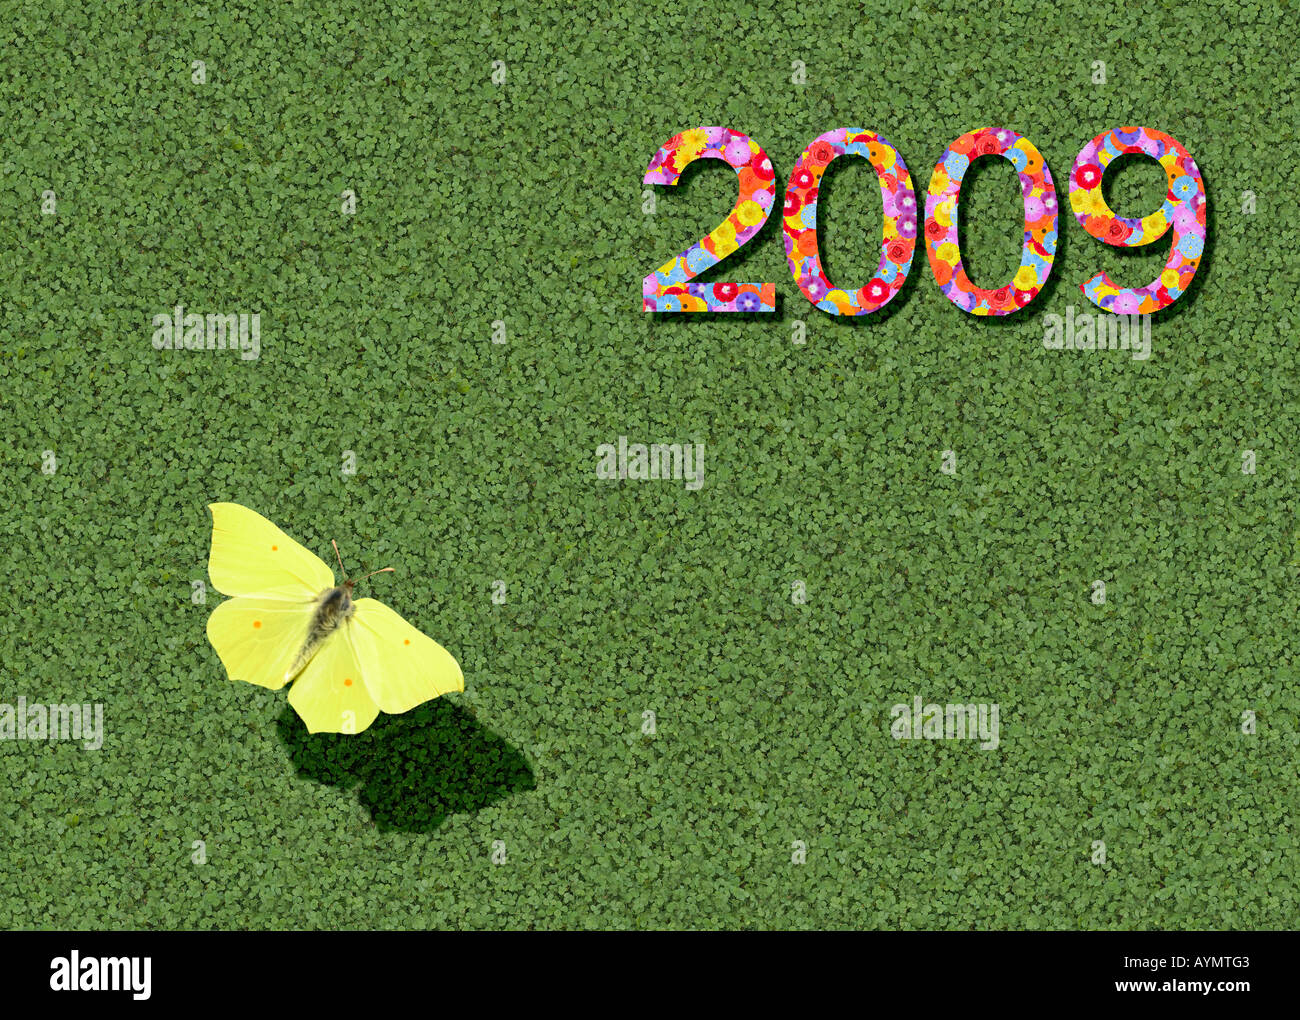 year 2009 with brimstone butterfly Gonepteryx Rhamni - Stock Image